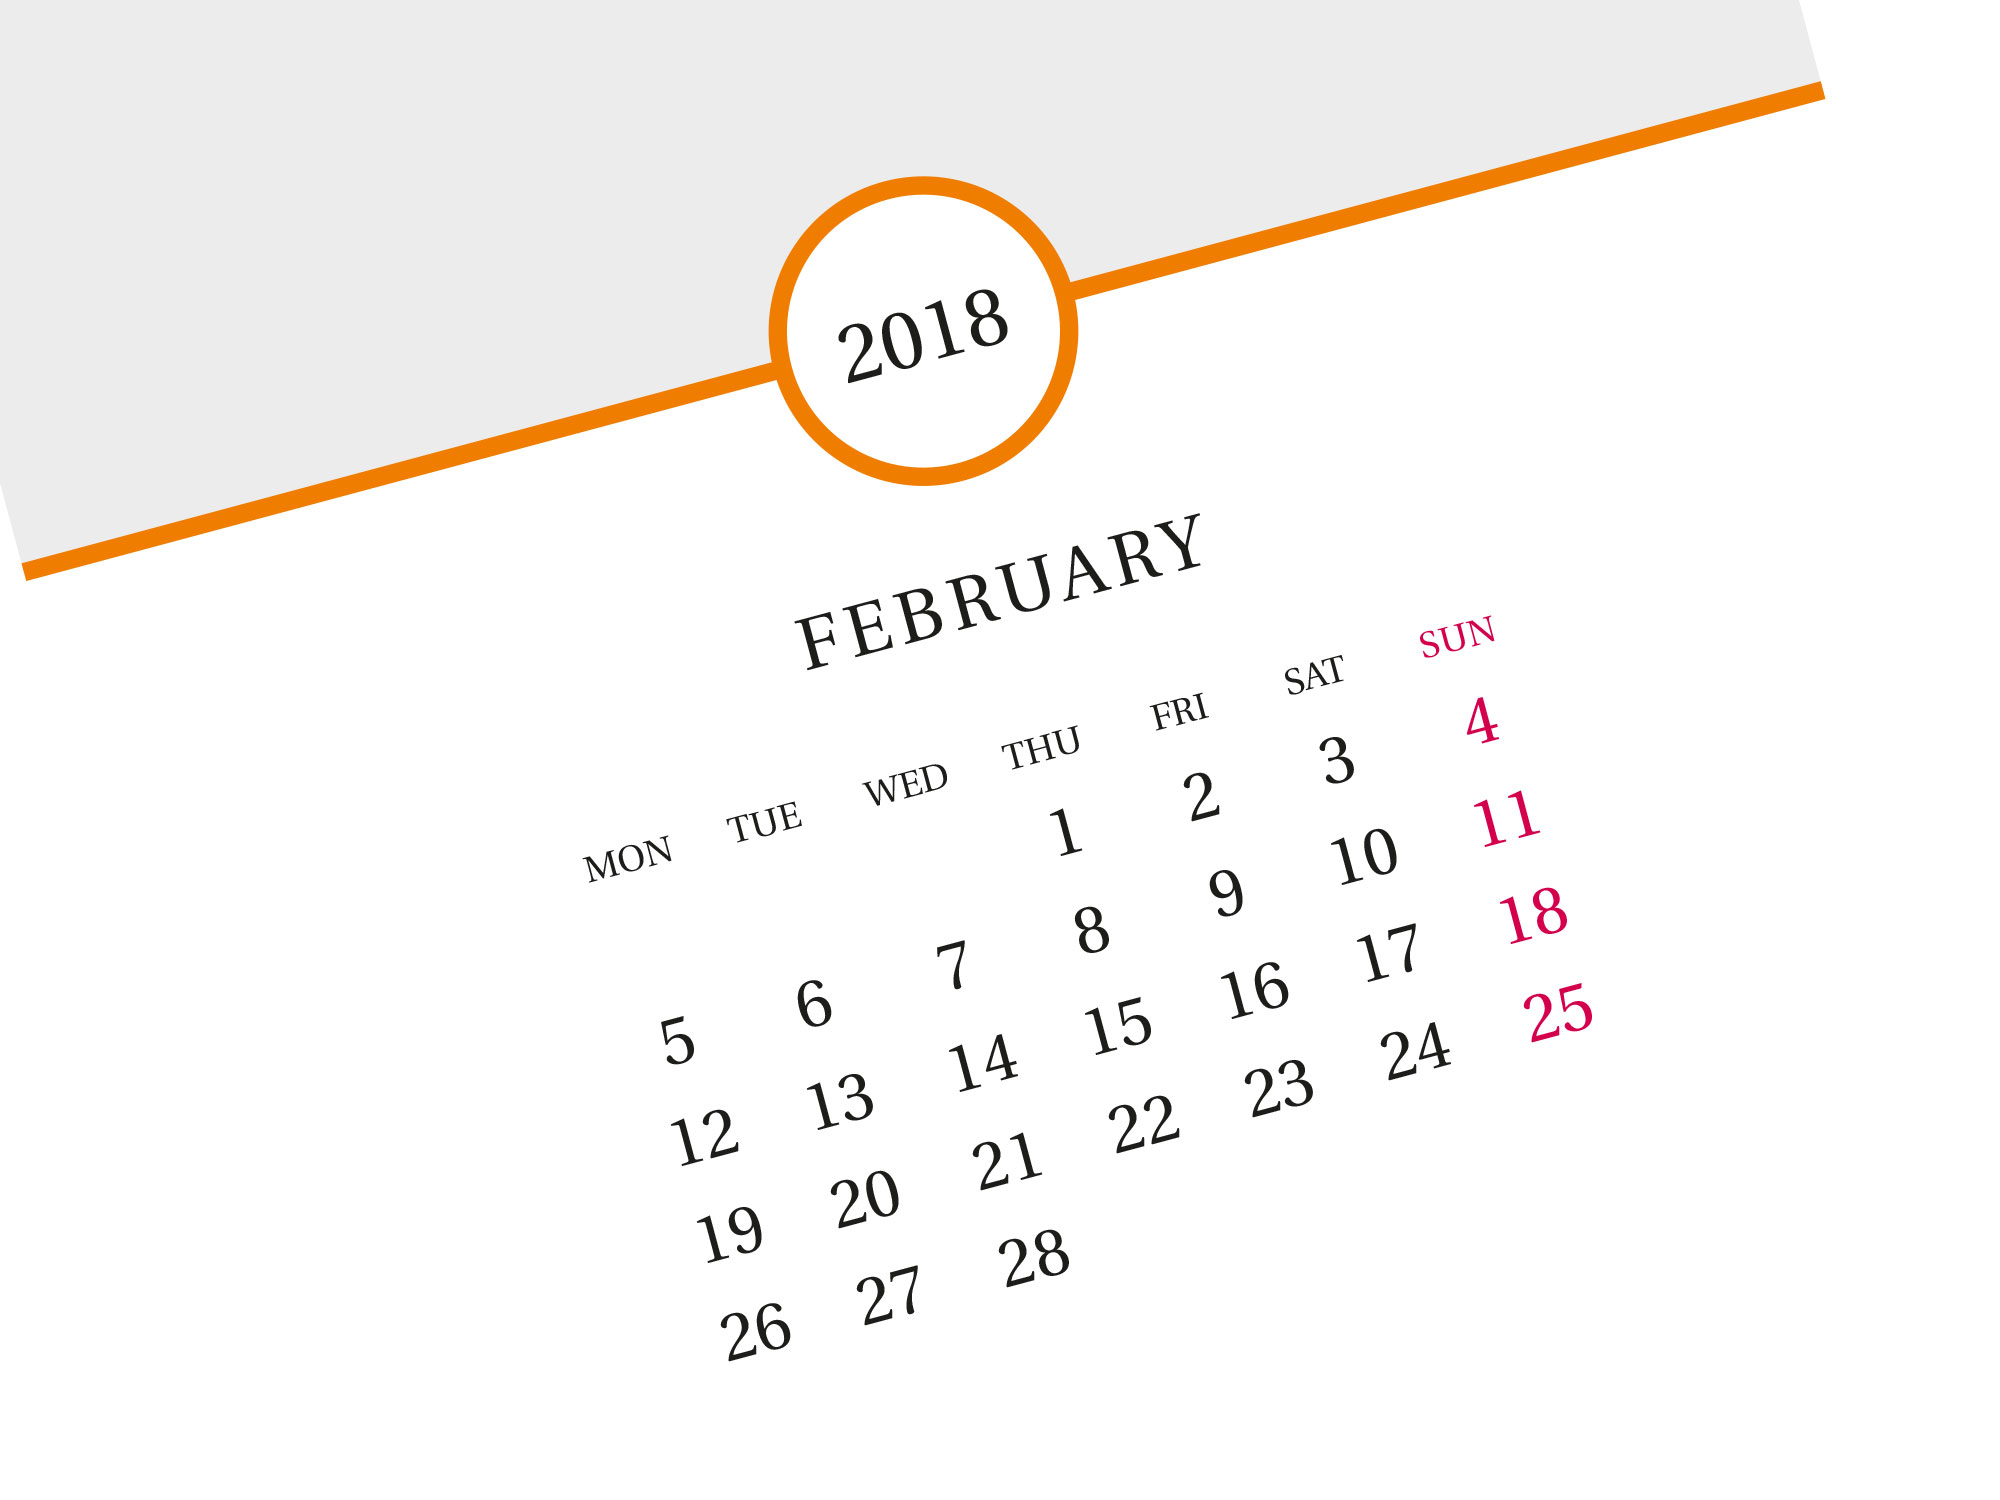 best month calendar template 2018 custom printable photo calendar. Black Bedroom Furniture Sets. Home Design Ideas